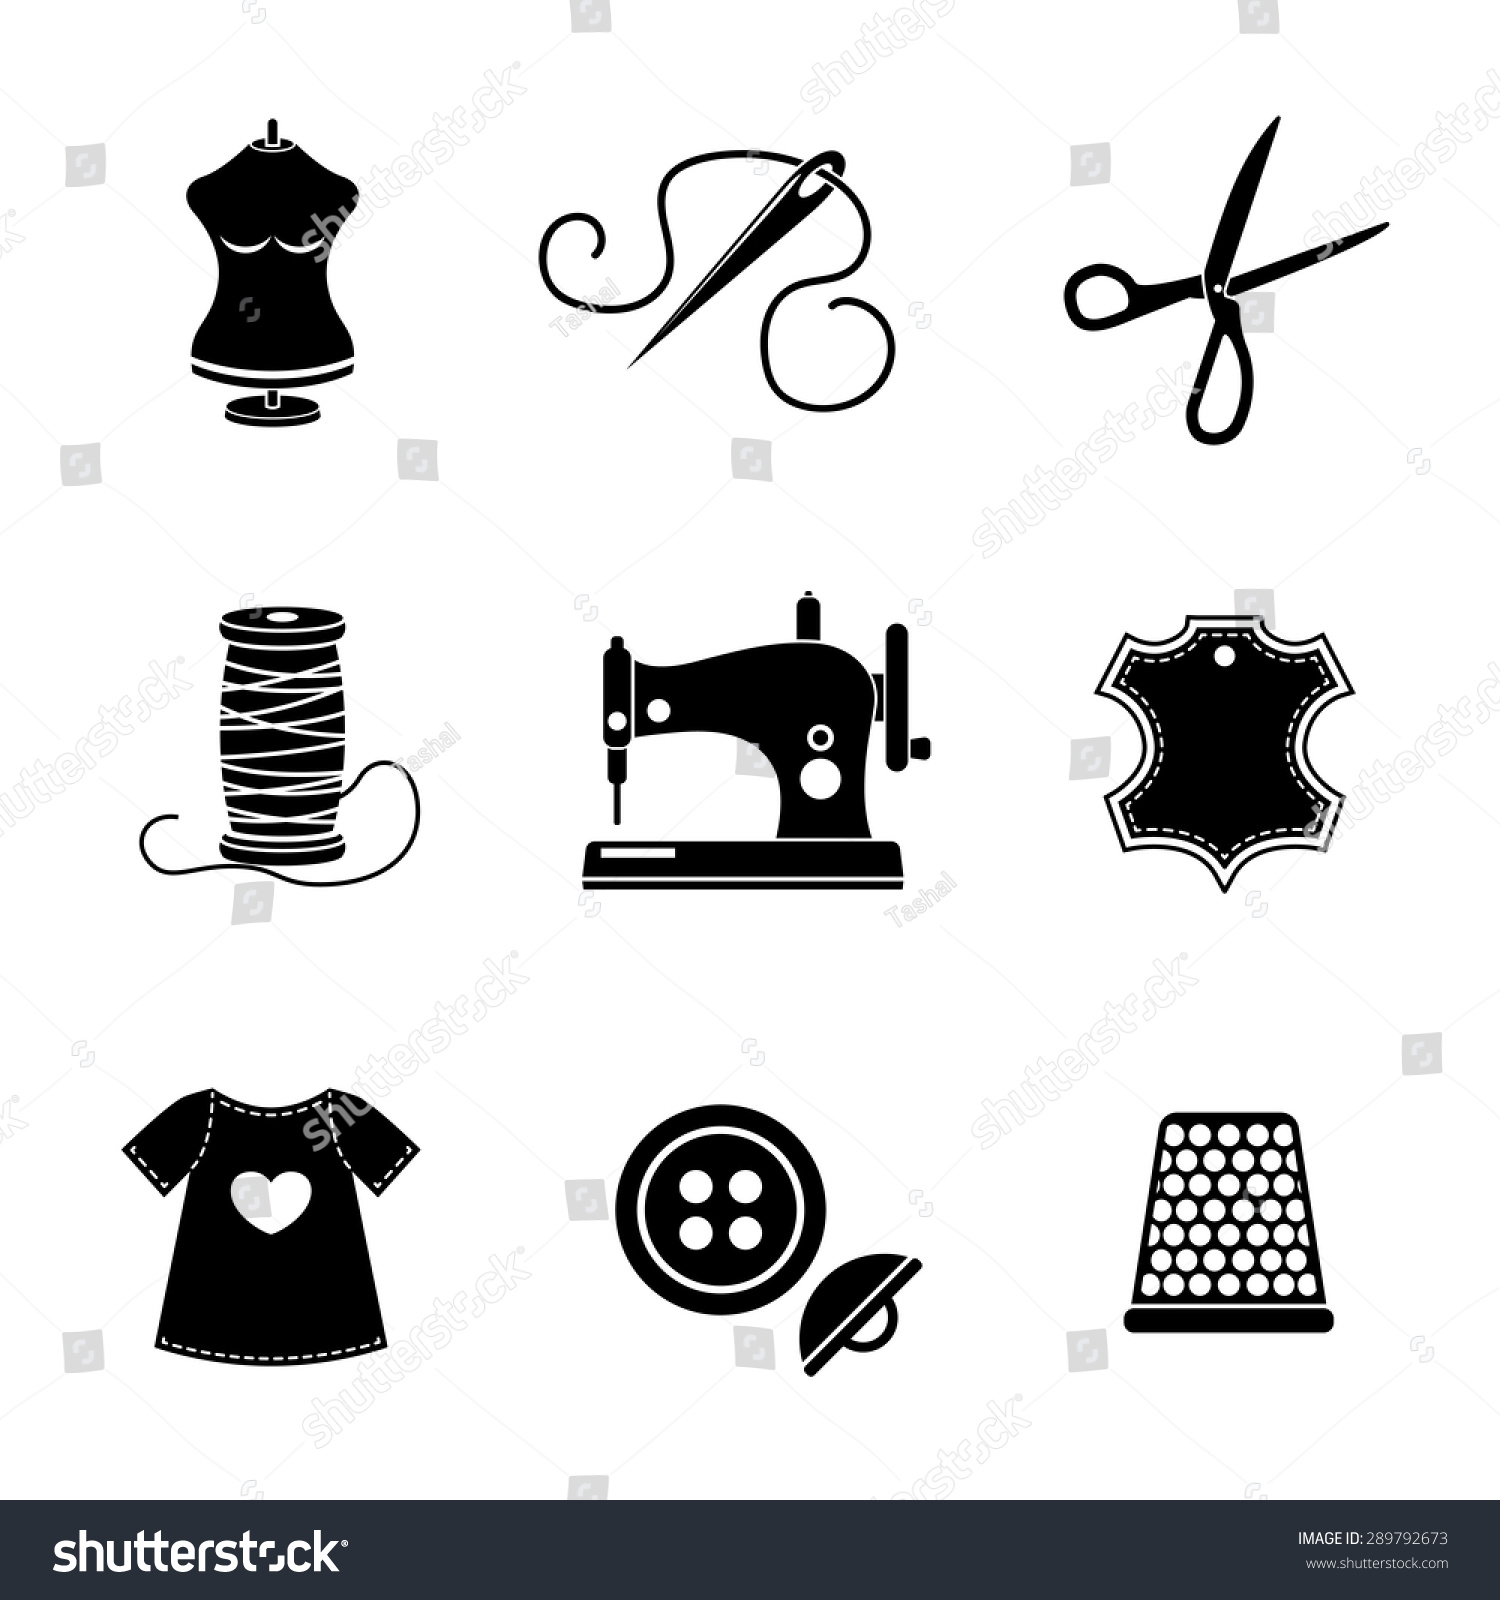 black sewing button clipart